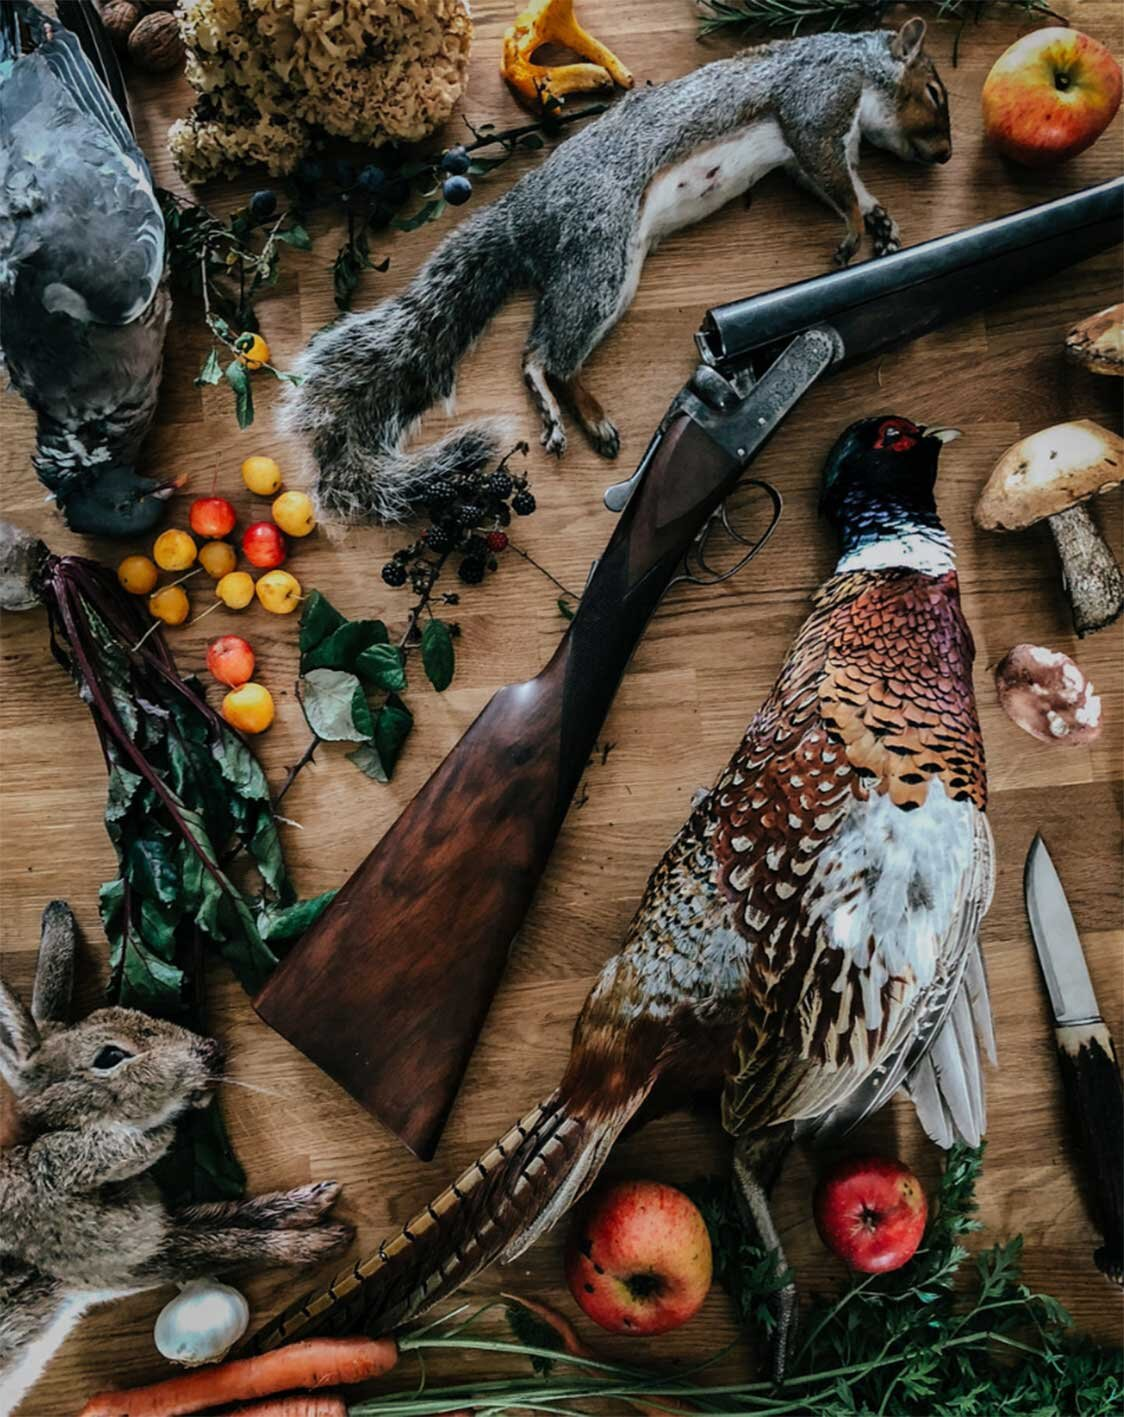 FIRE + WILD, Autumn, Feast and Forage, East Sussex